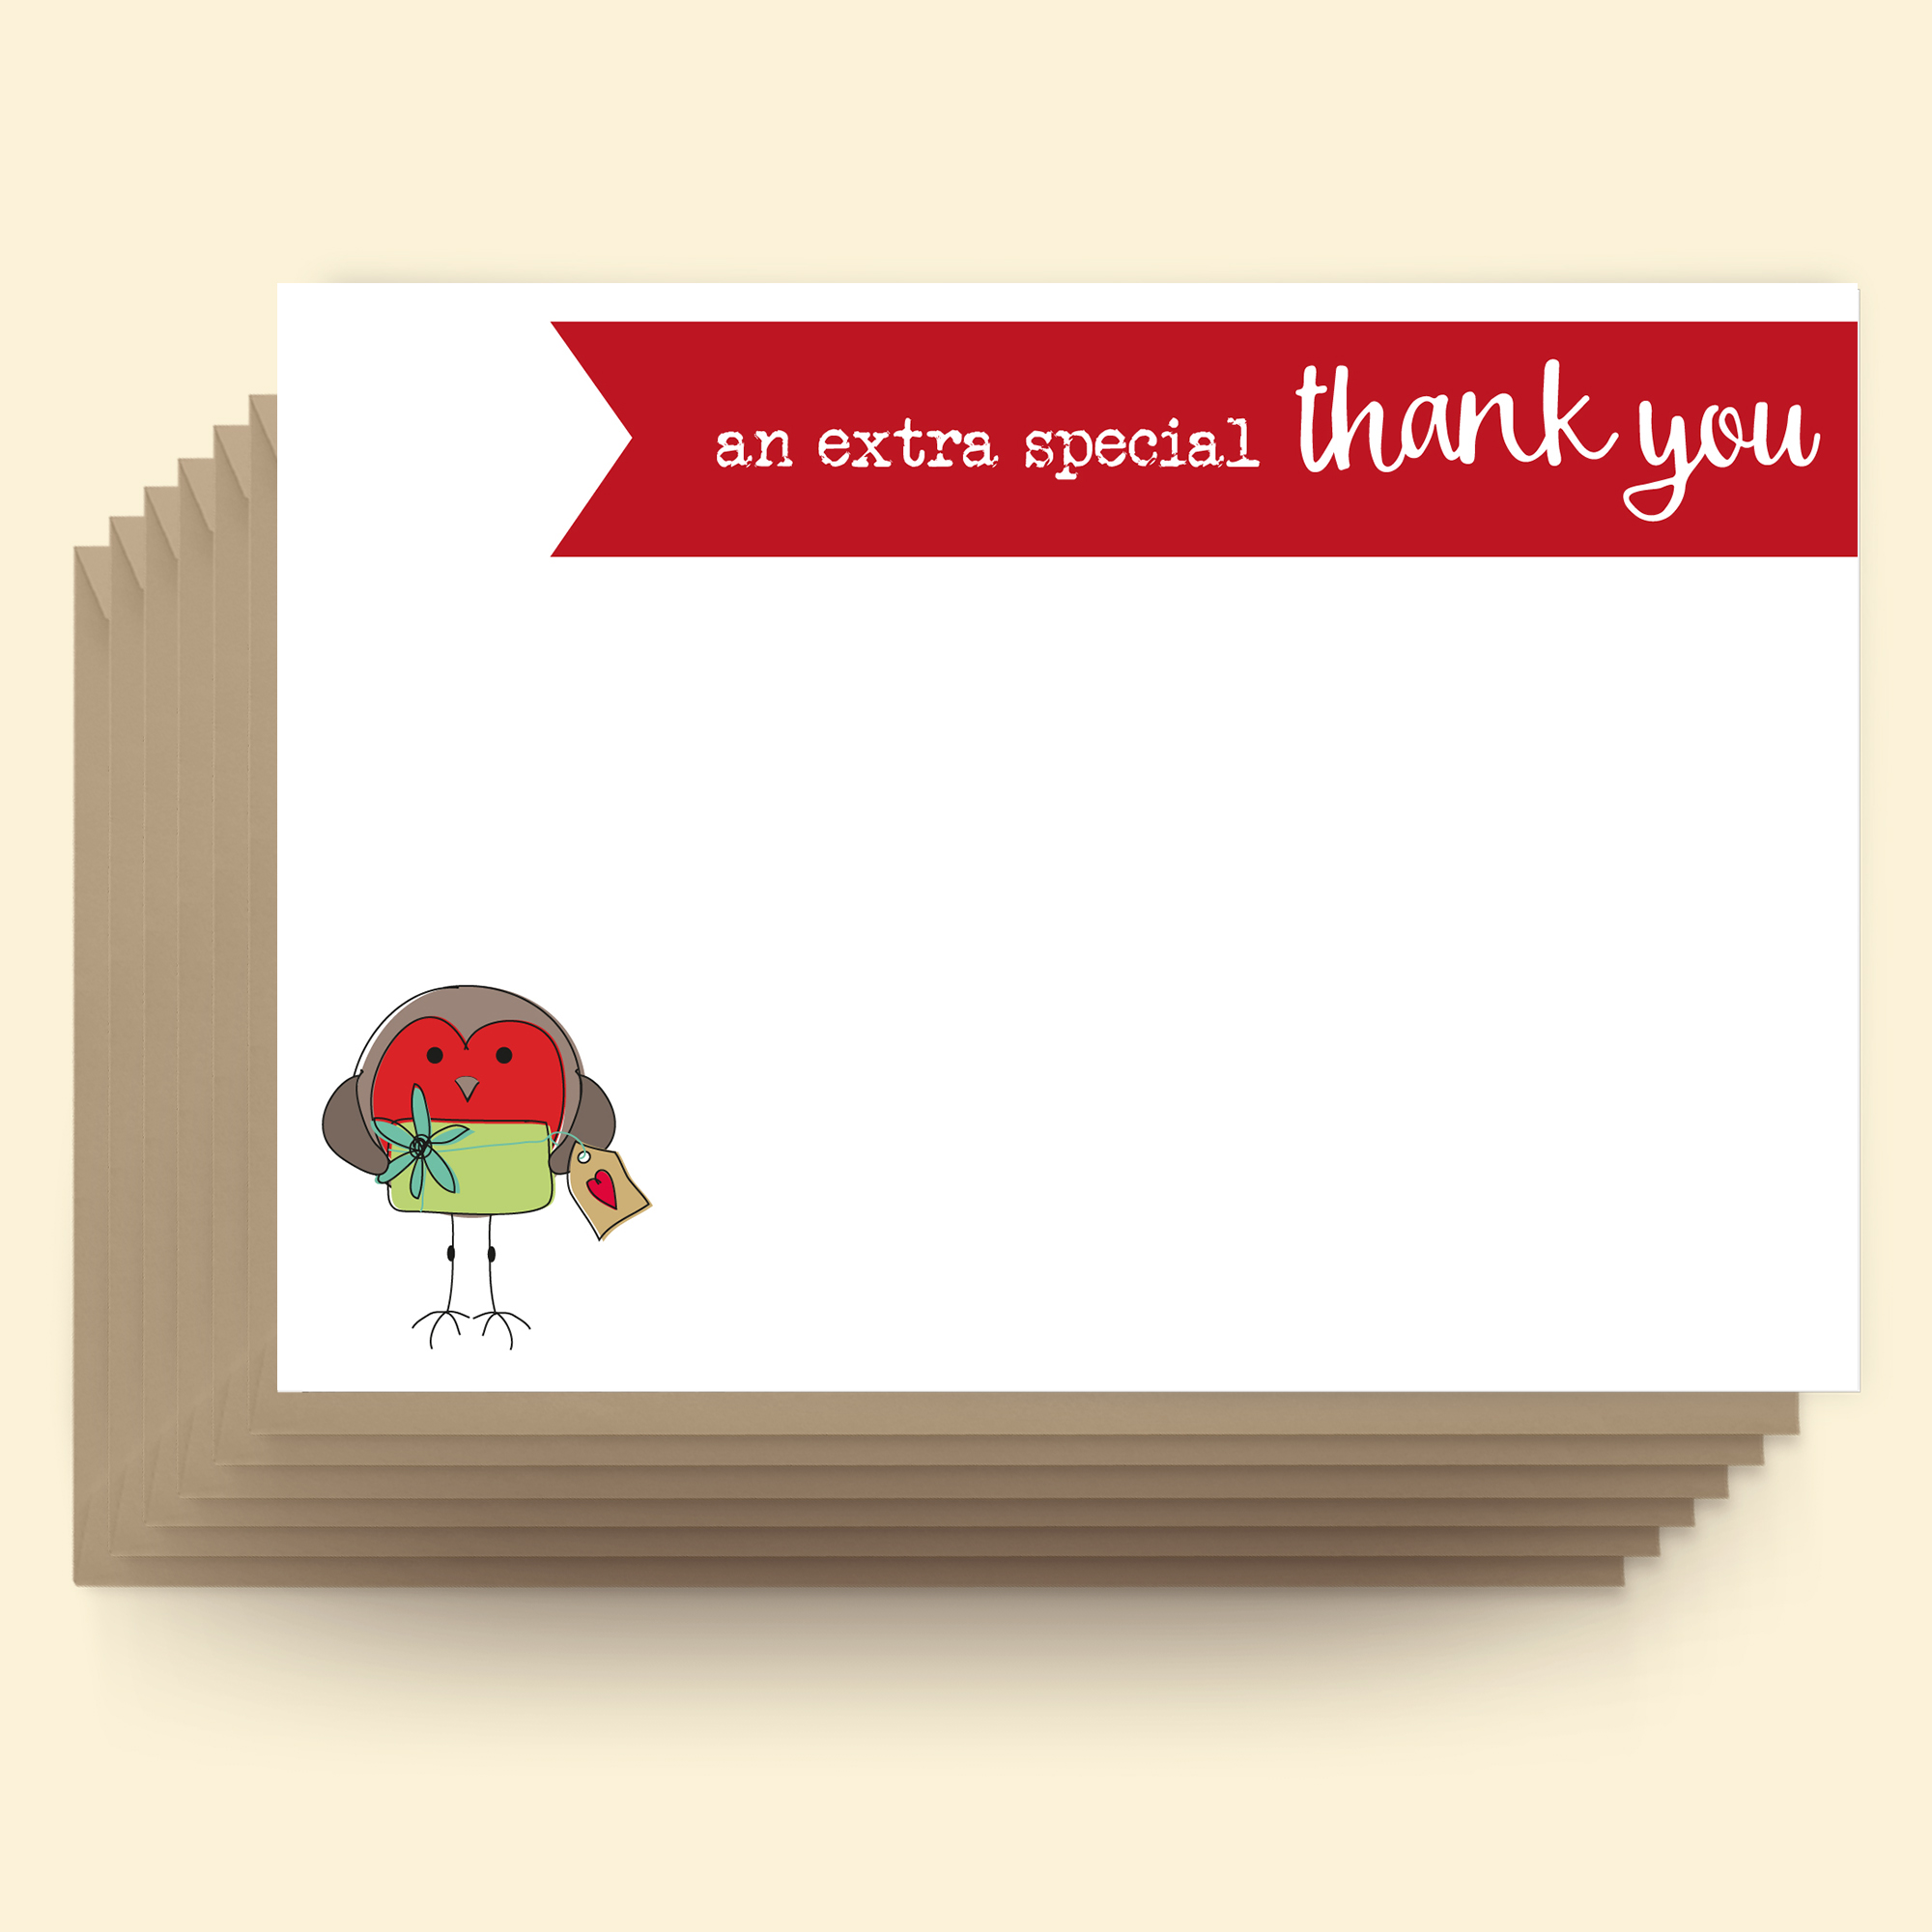 Postcards - Christmas - An extra special thank you